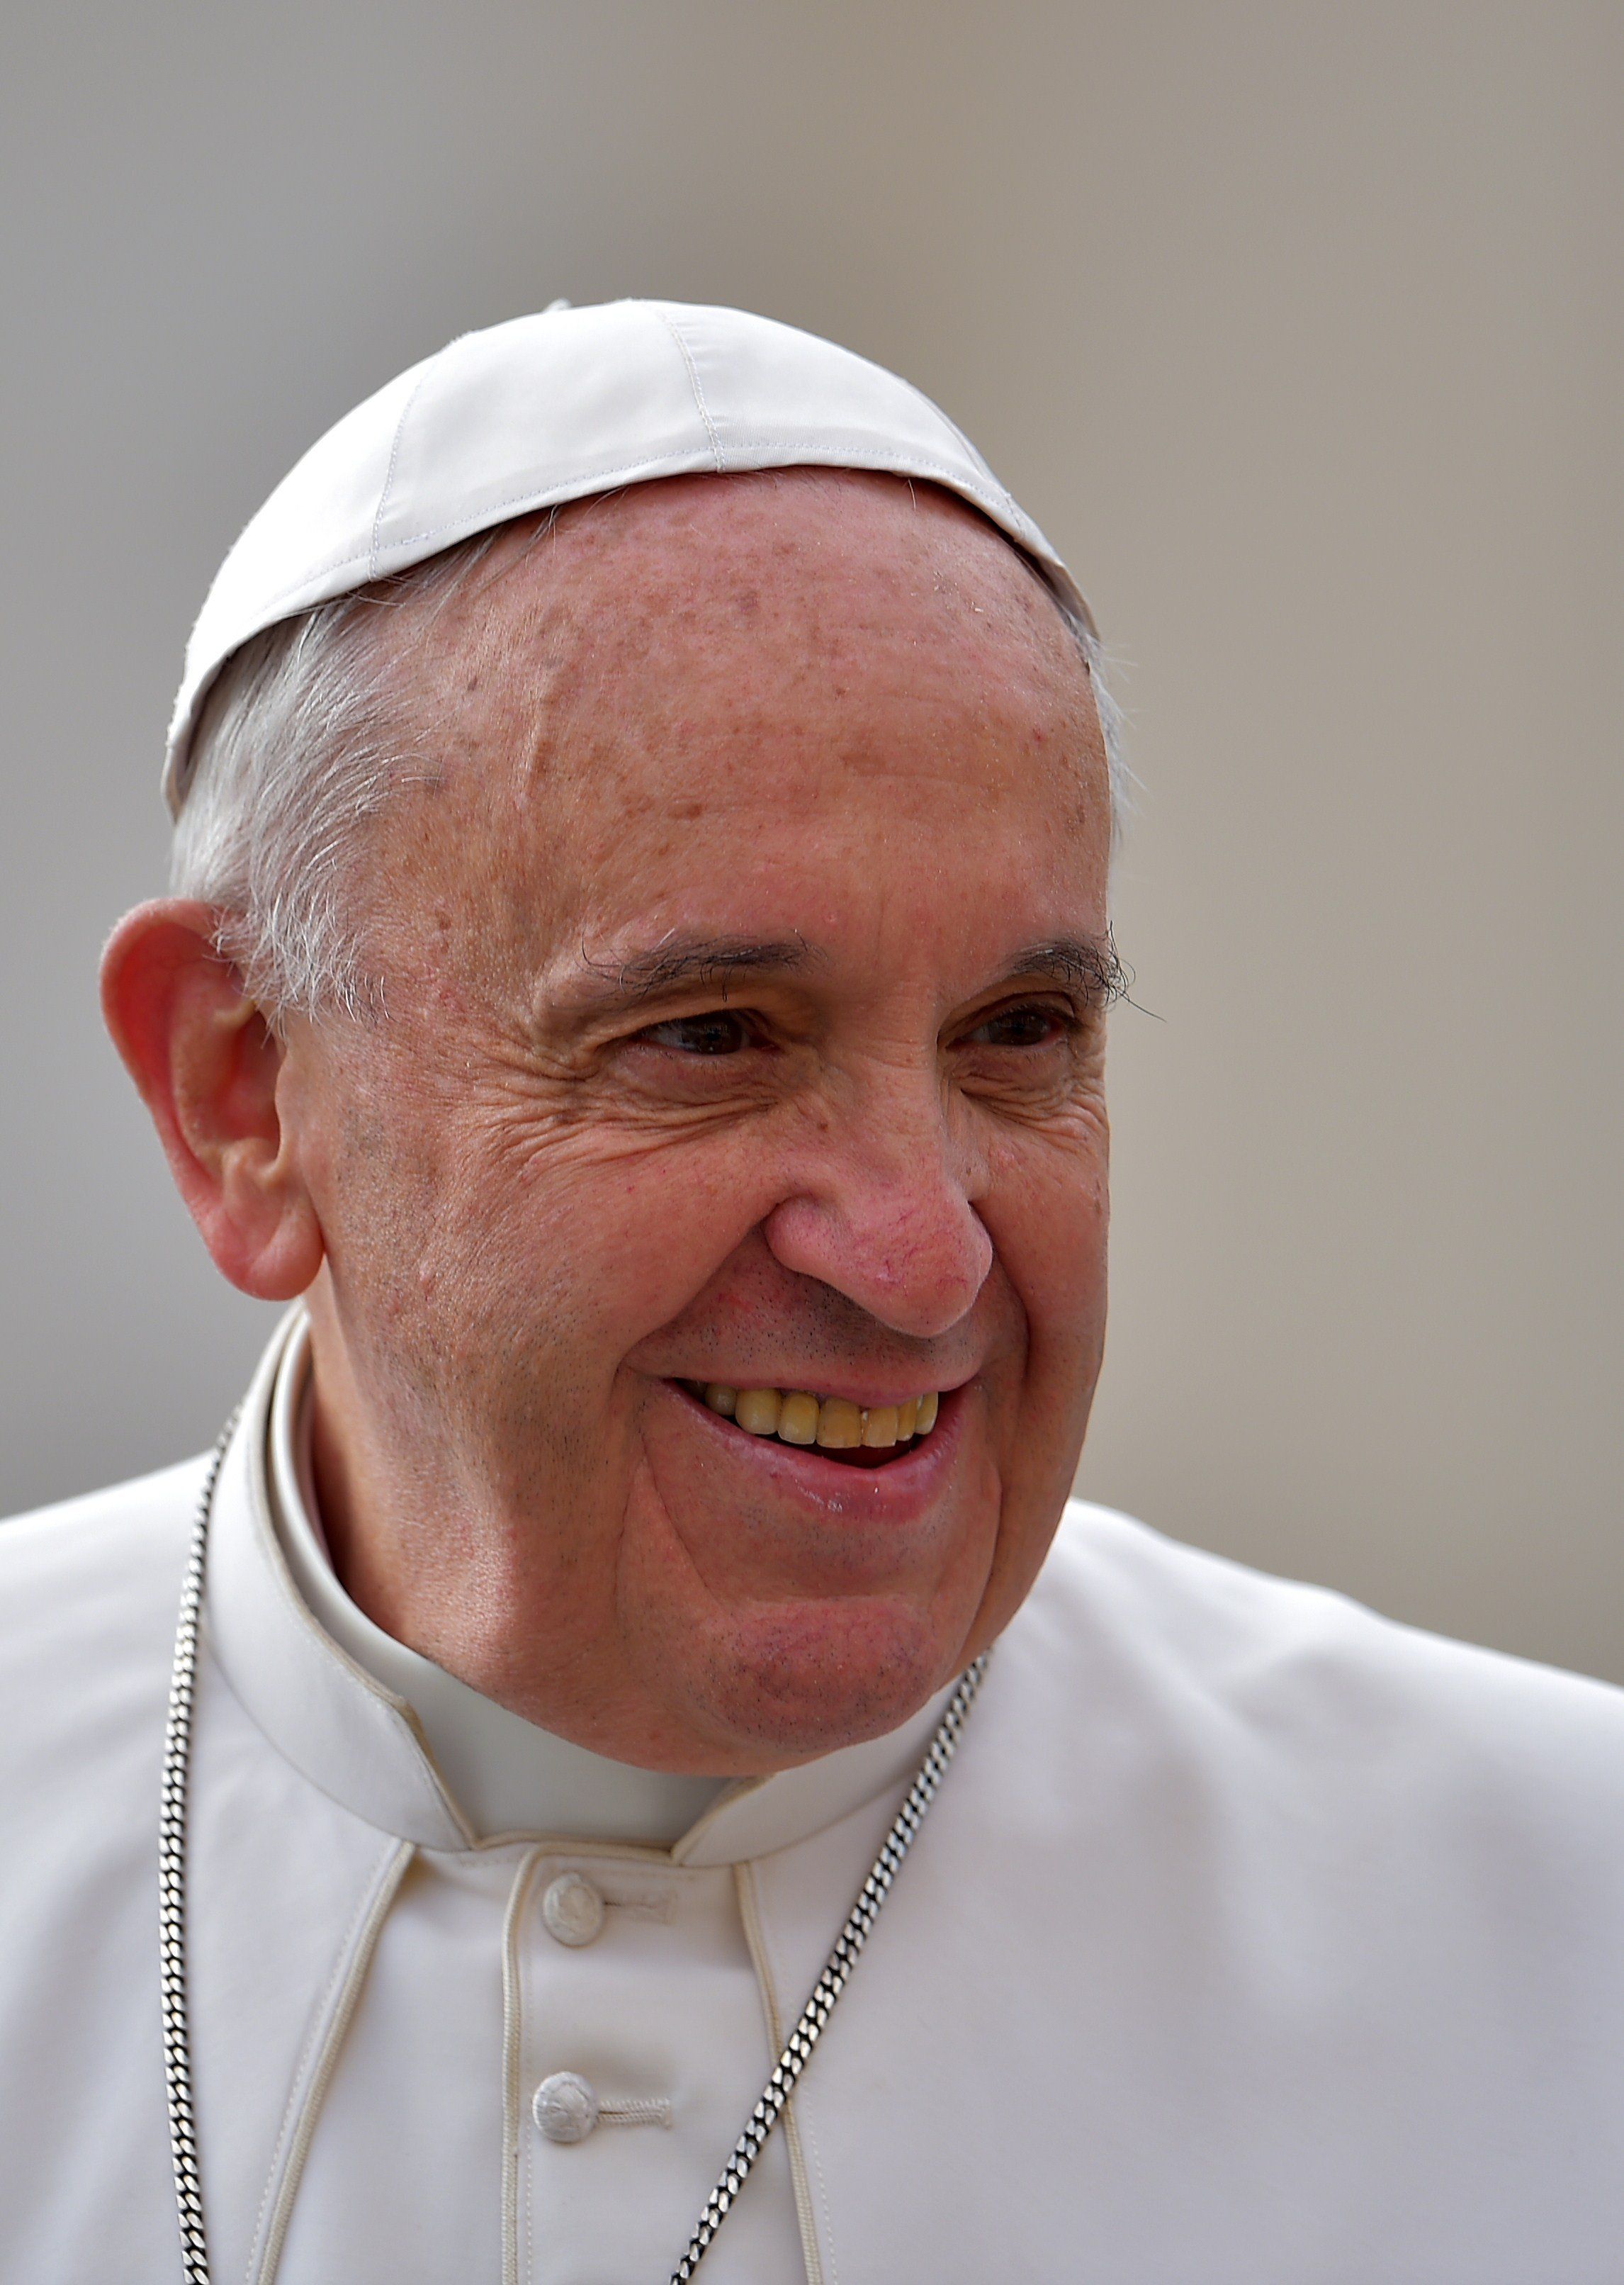 Pope Francis smiles as he arrives to lead his open-air weekly audience in St. Peter's square on April 29, 2015 at the Vatican.